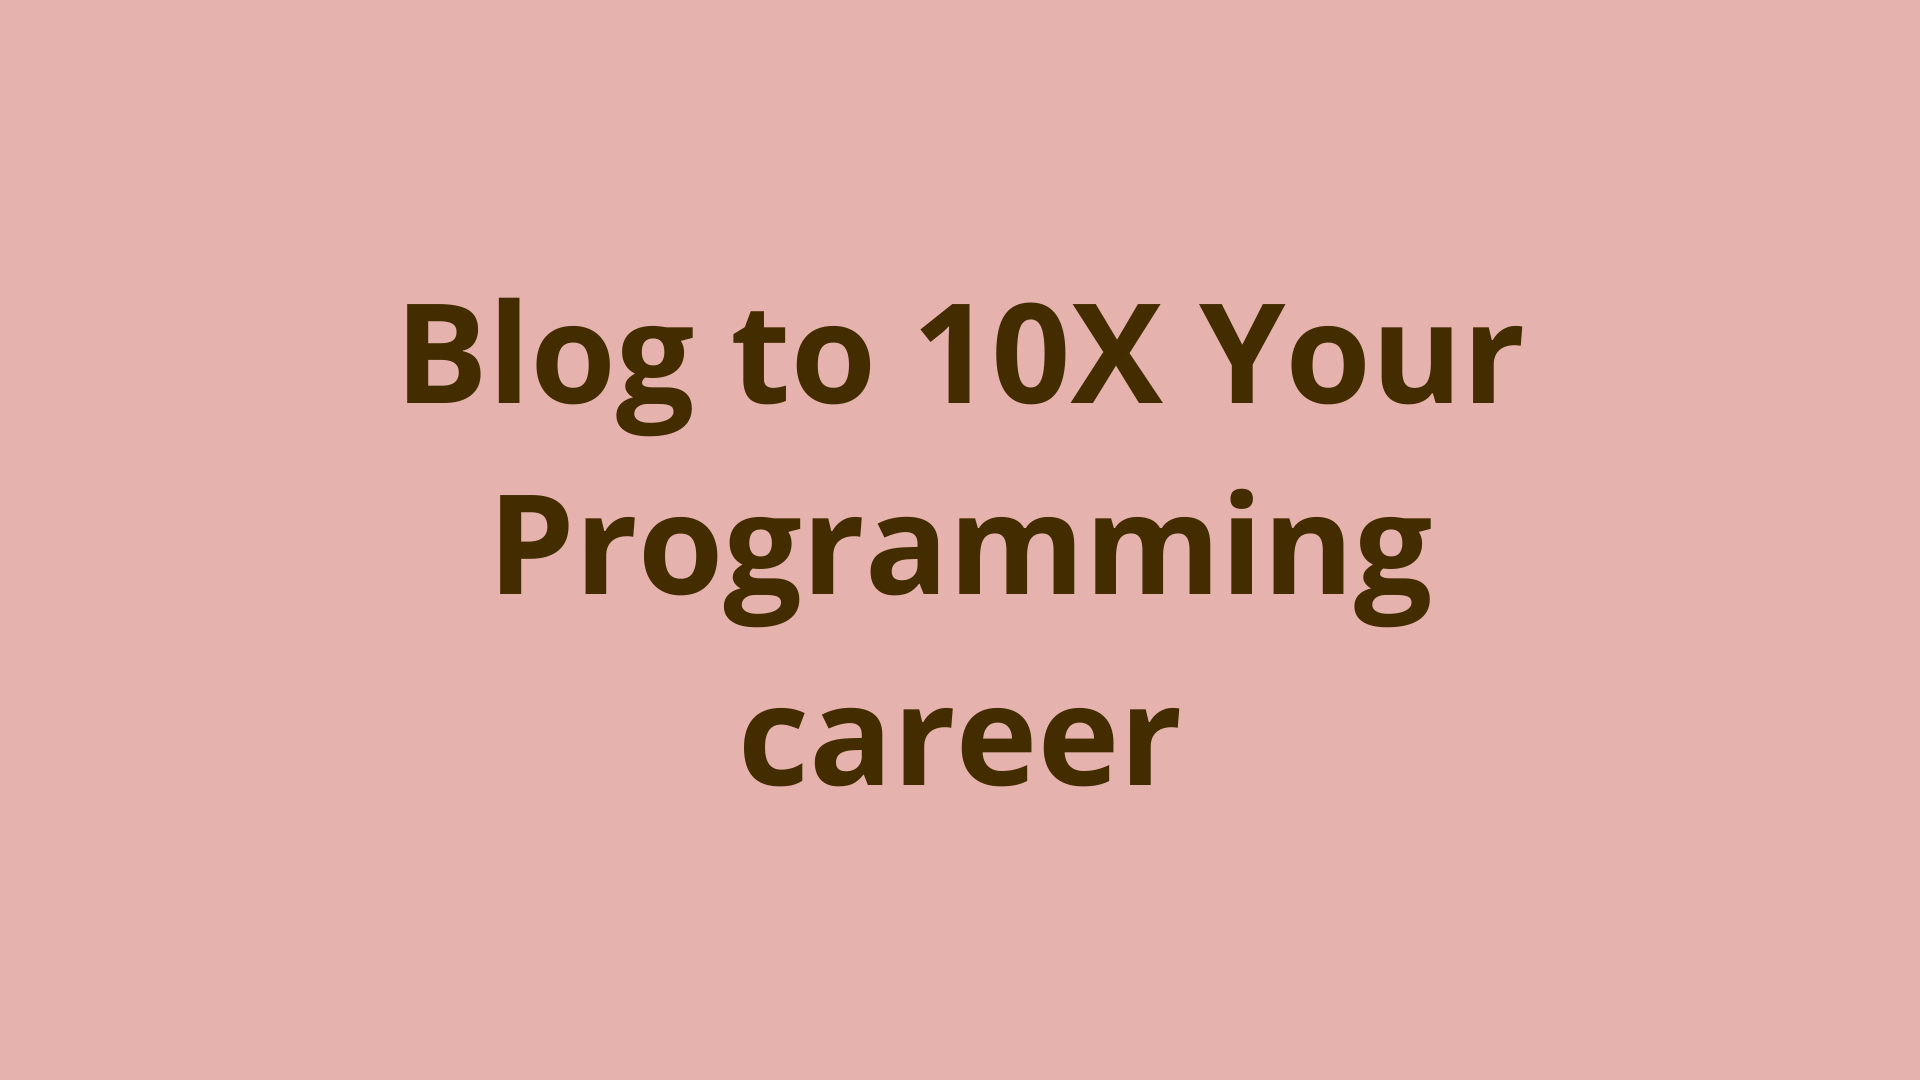 Image of Blog to 10X your programming career